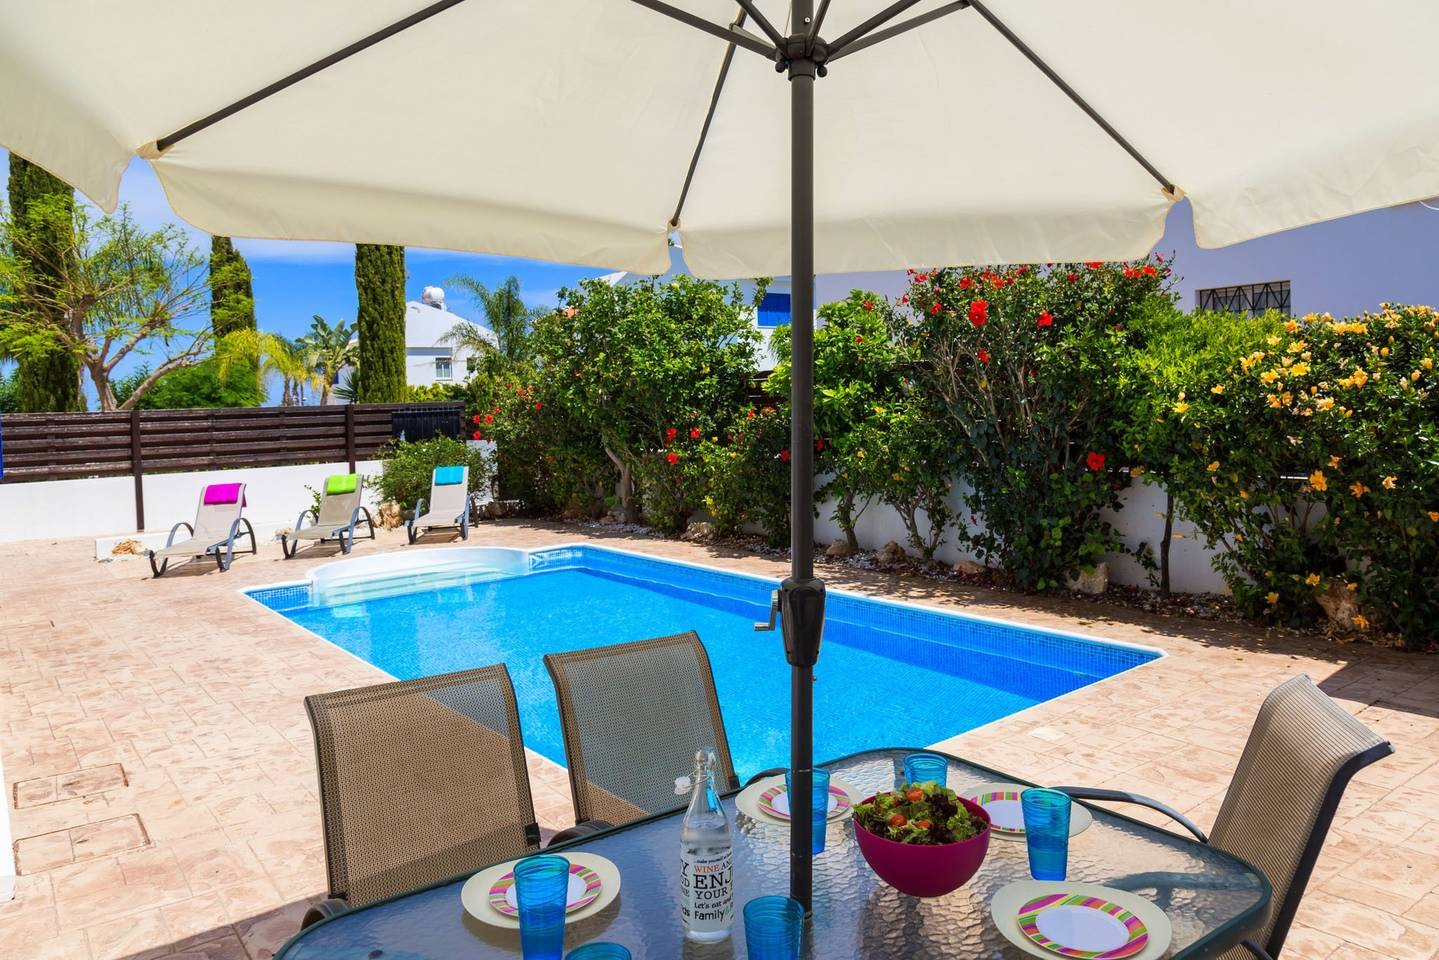 Apartment Villa Evace - 3 Bedroom Villa with Private Pool - 100m from Beach photo 18516346